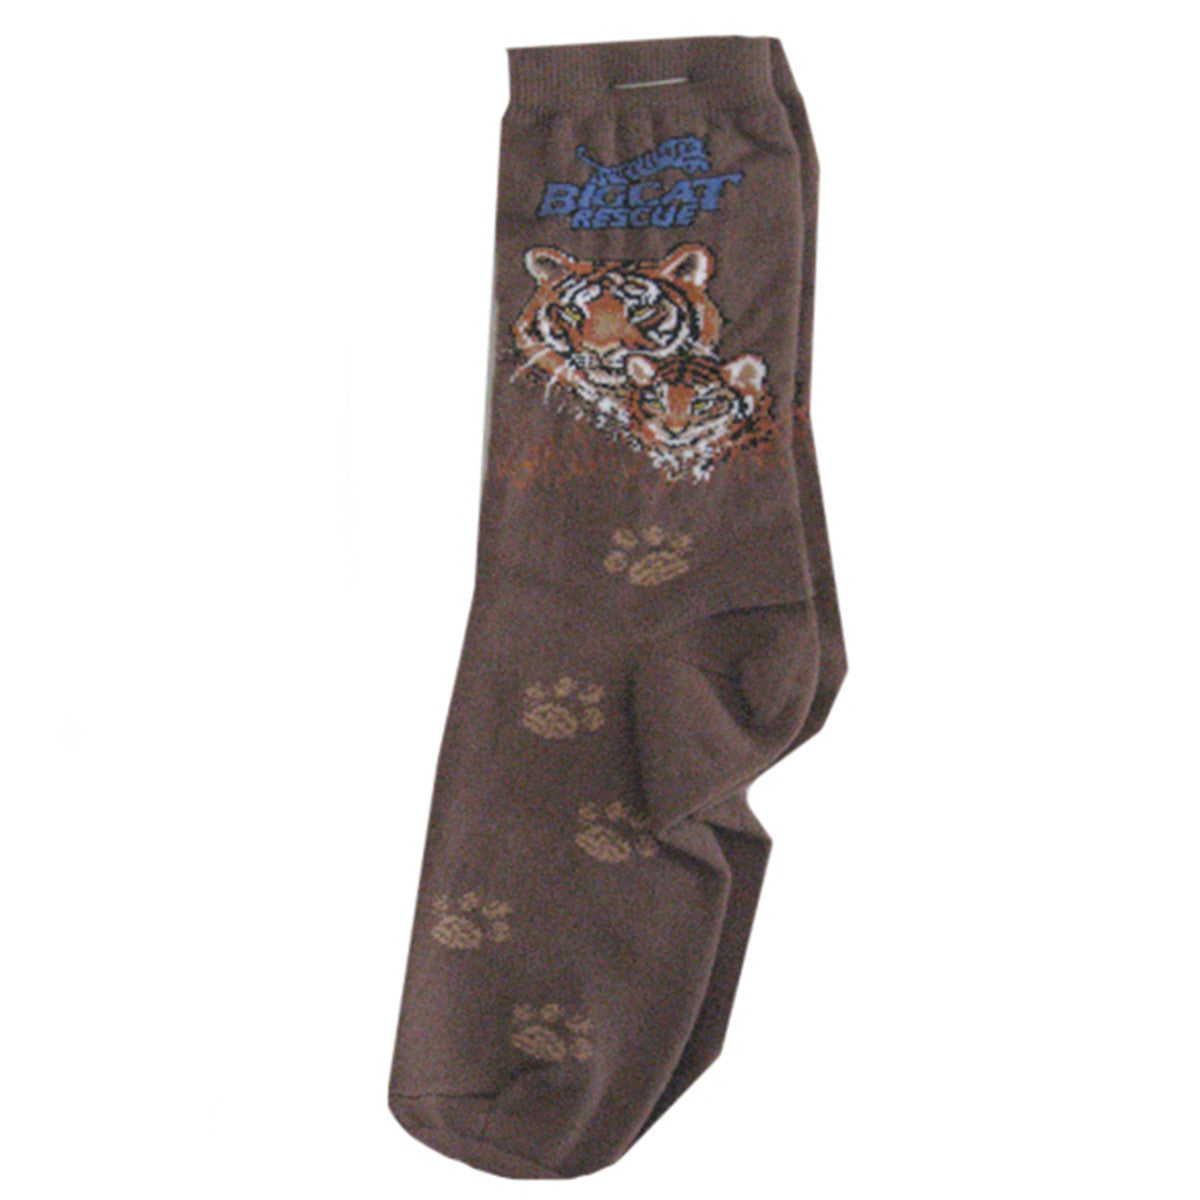 Sock - Crew Big Cat Rescue Logo Brown Tiger